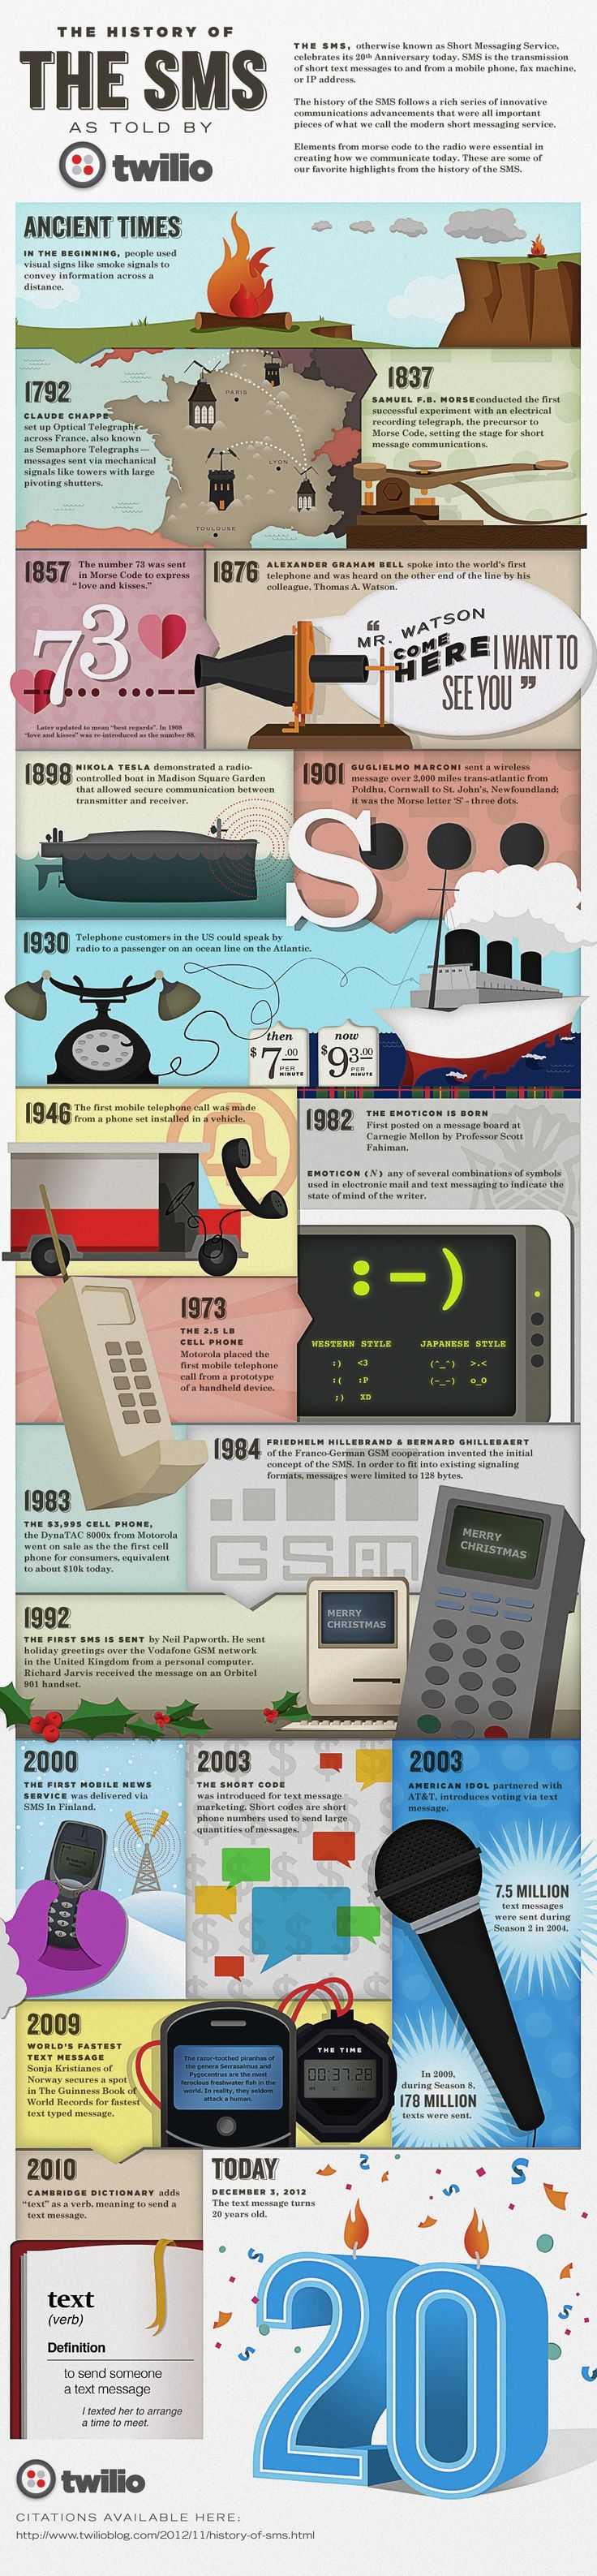 History of texting #sms